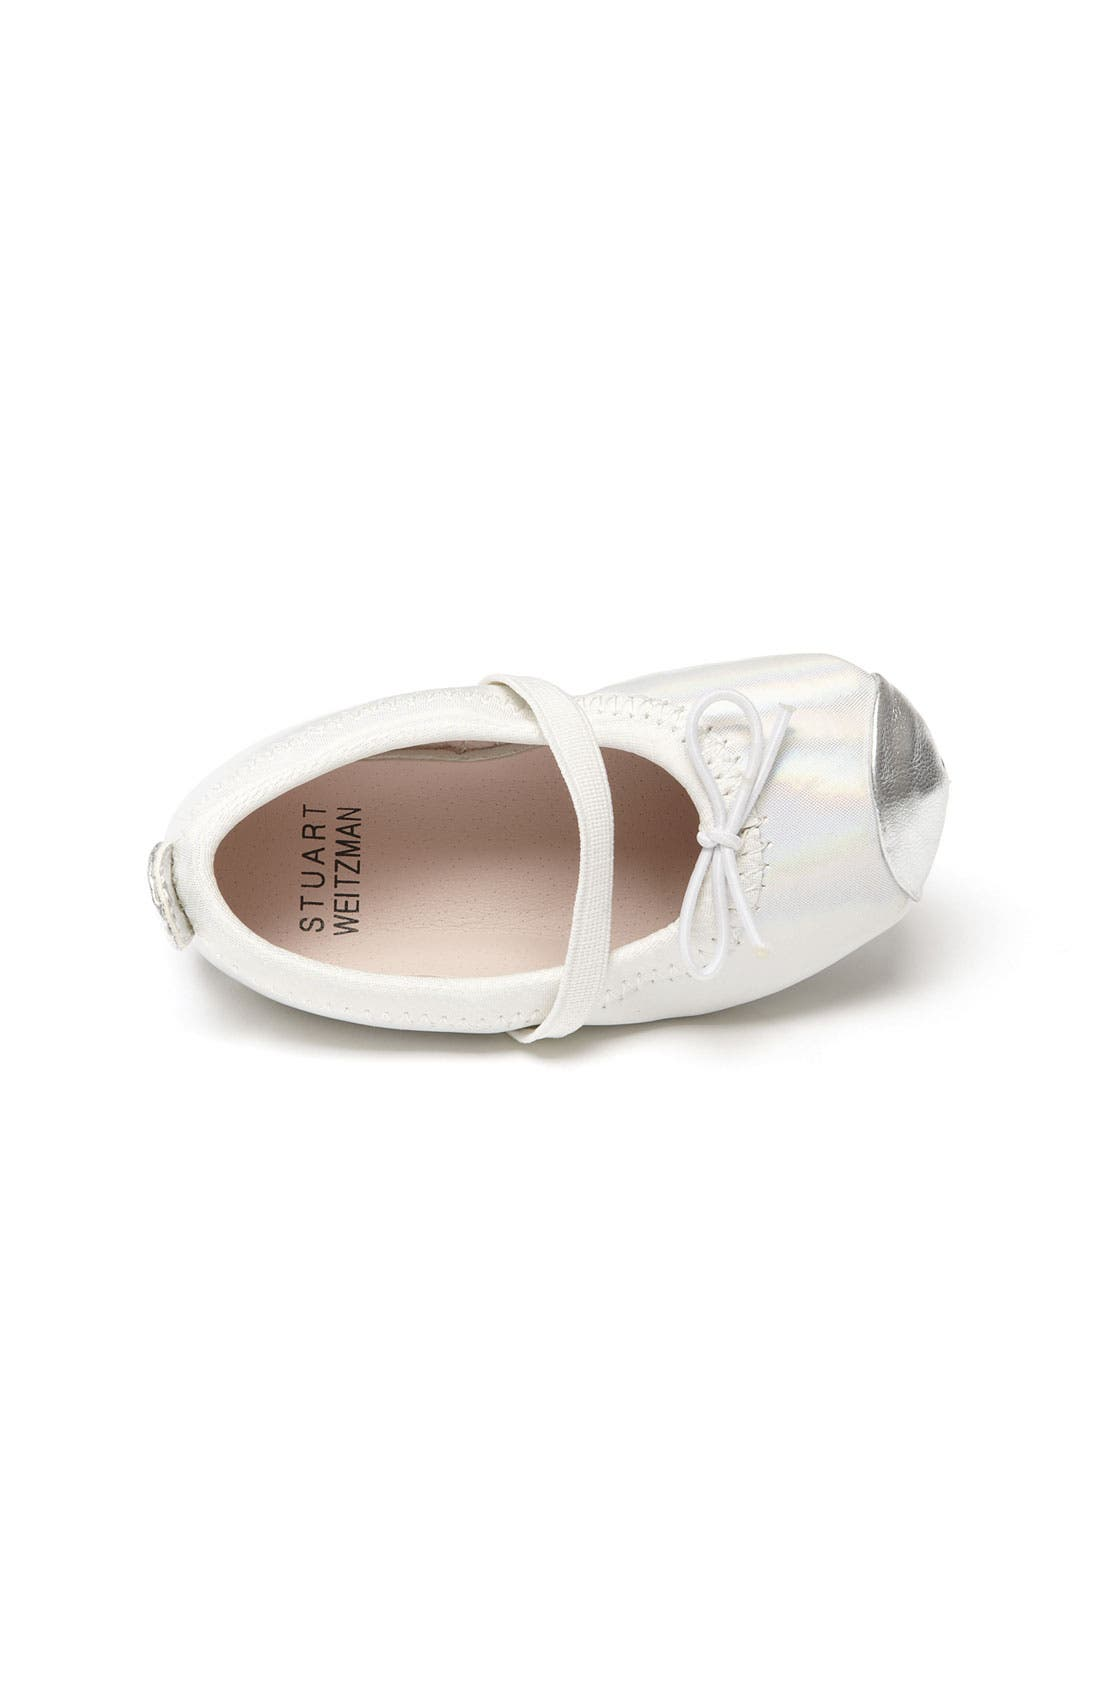 Alternate Image 3  - Stuart Weitzman 'Baby Chippy' Crib Shoe (Baby)